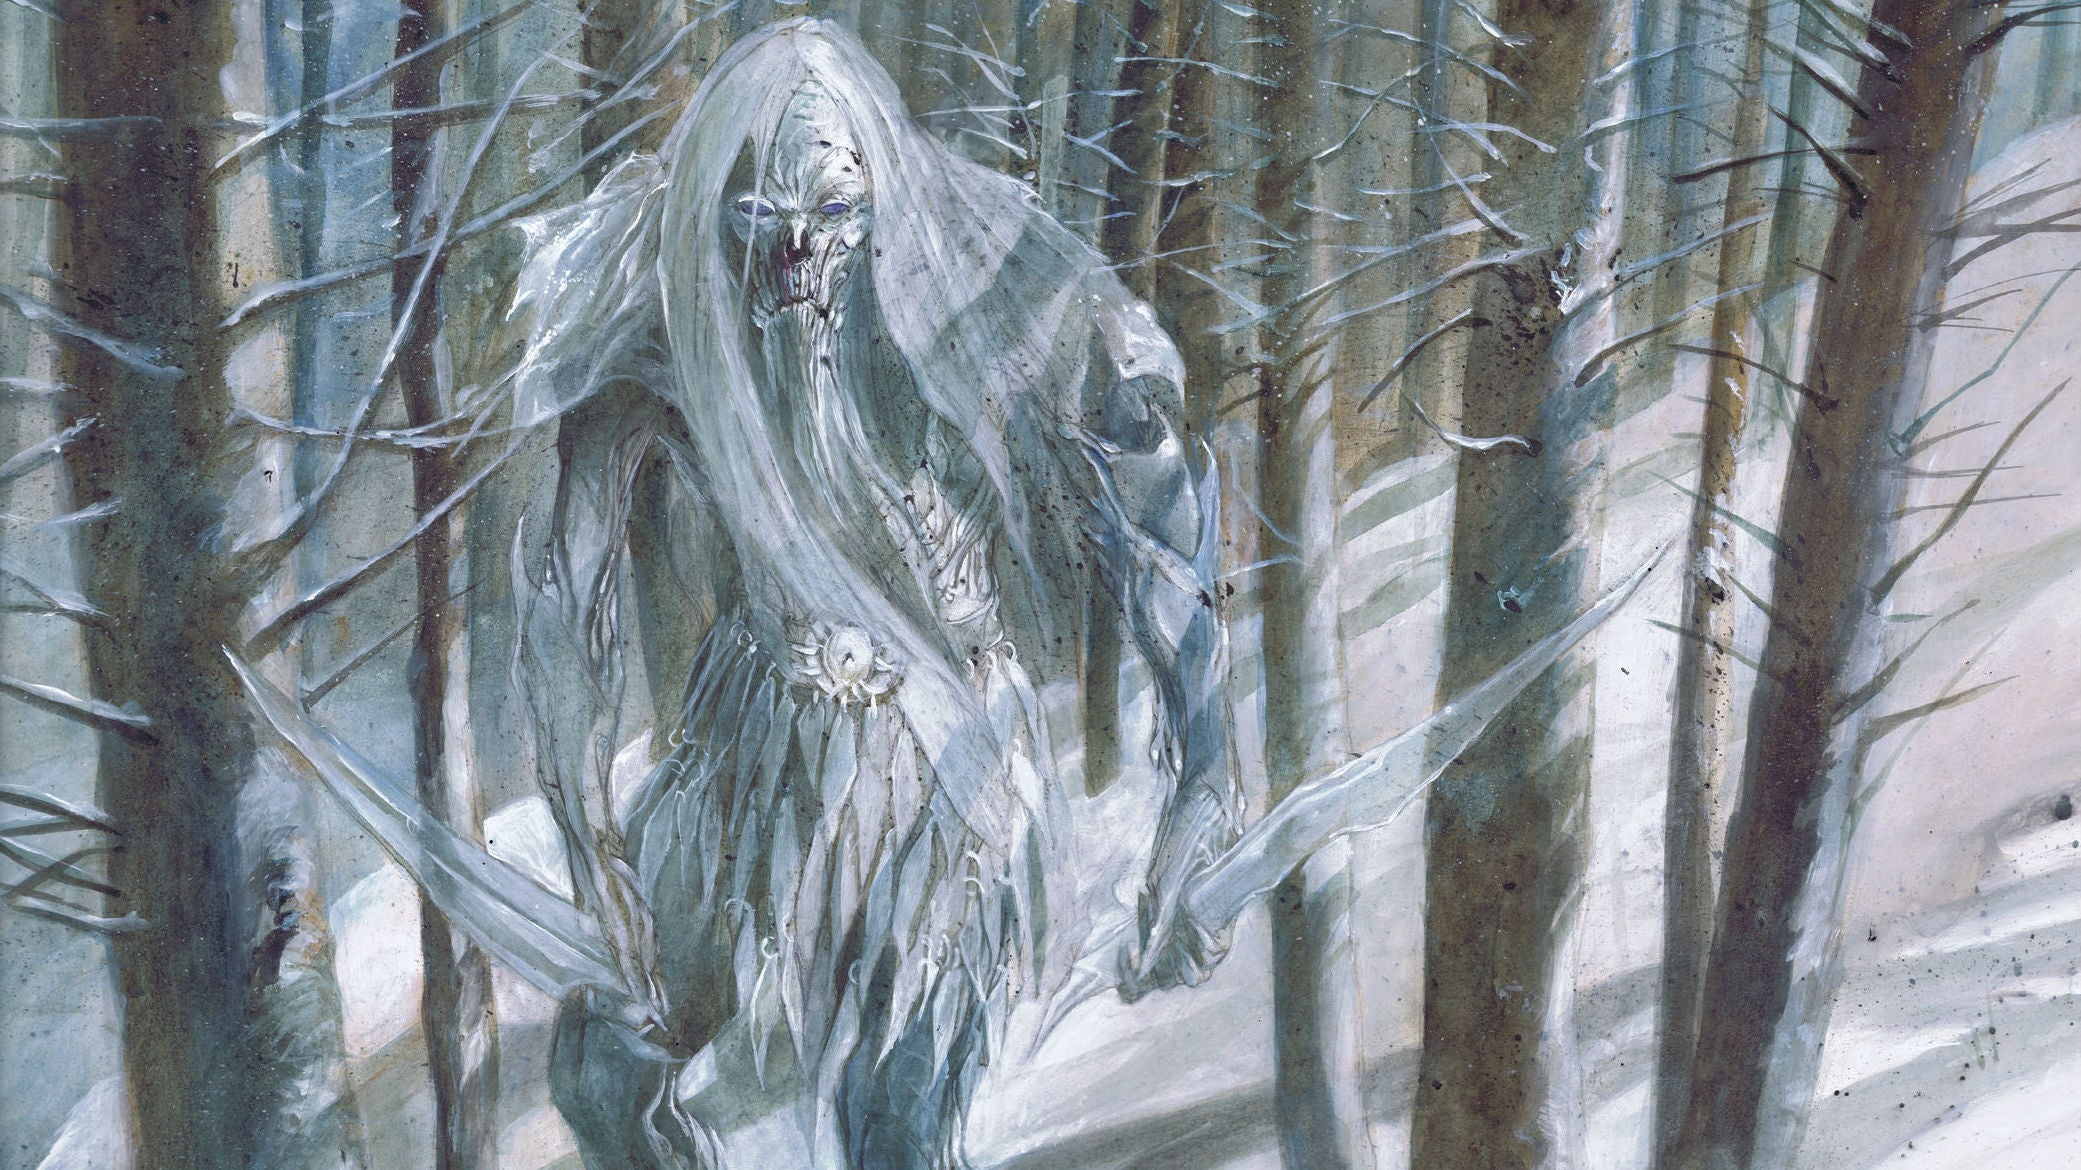 These Gorgeous Game Of Thrones Storyboards Offer Just A Glimpse Of A Massive New Book